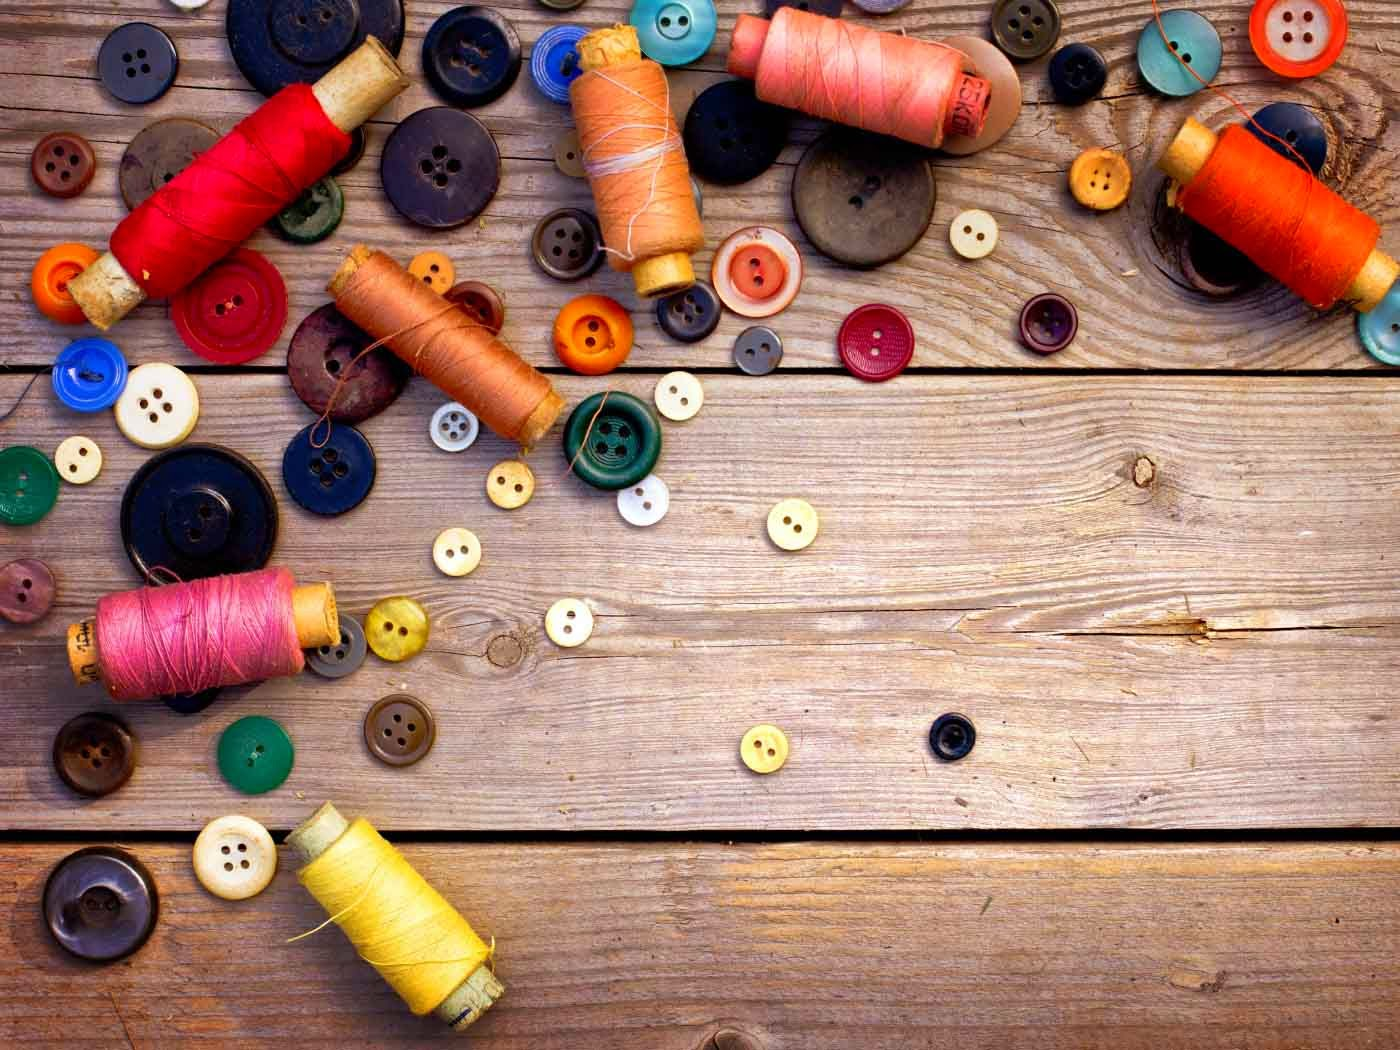 টেক্সটাইল সূতার আদি অন্ত  (Choosing The Right Thread From Fiber to Finishing)